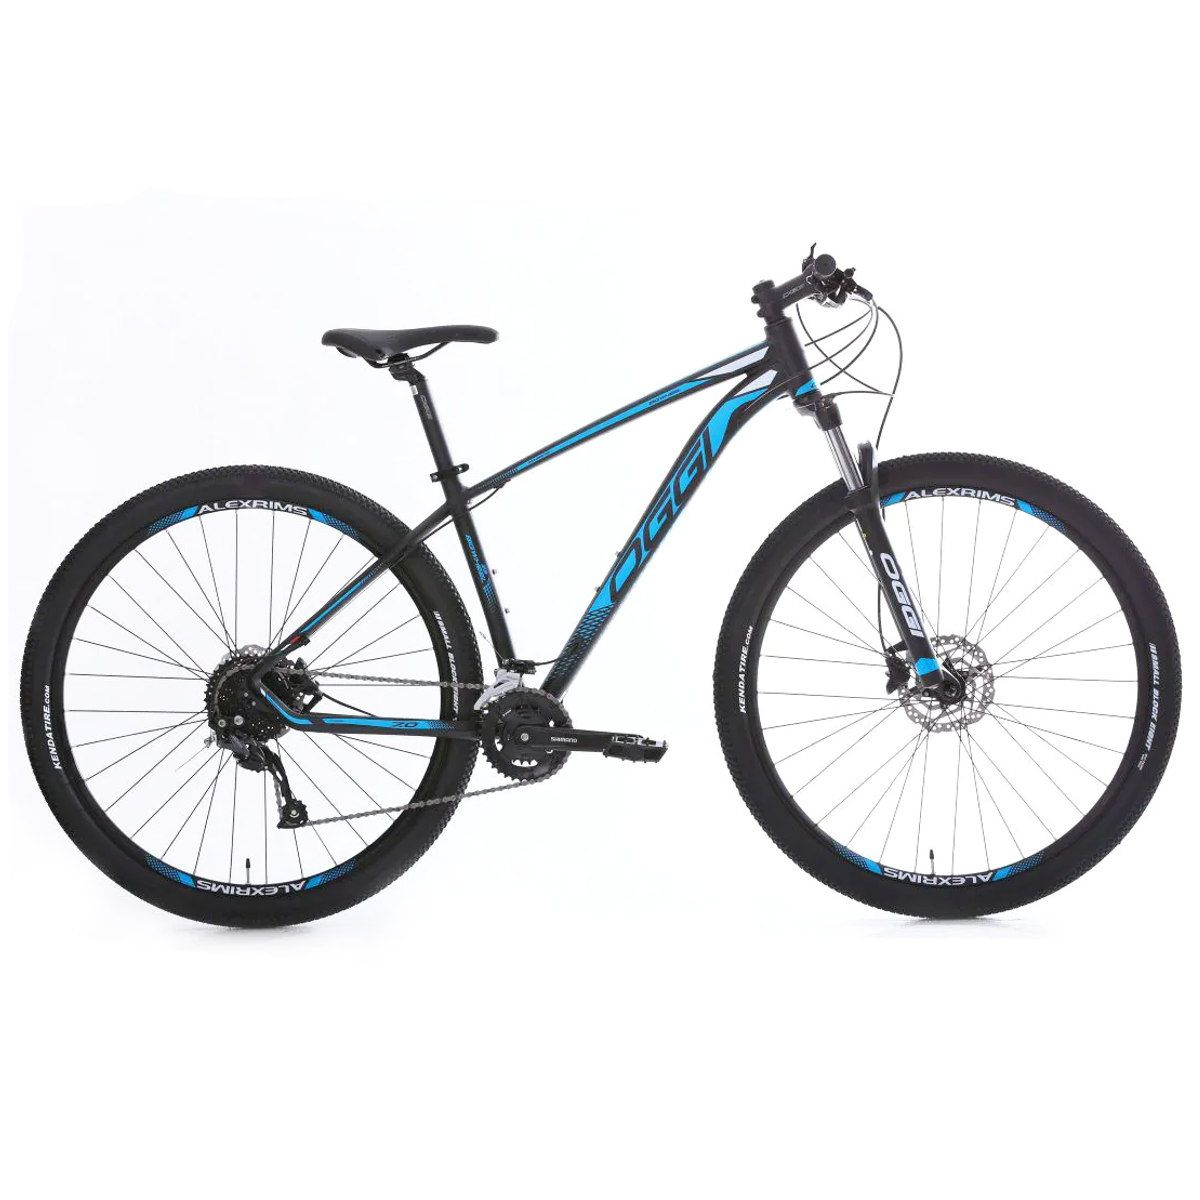 Bicicleta Oggi Big Wheel 7.0  18v 2020 aro 29 Azul